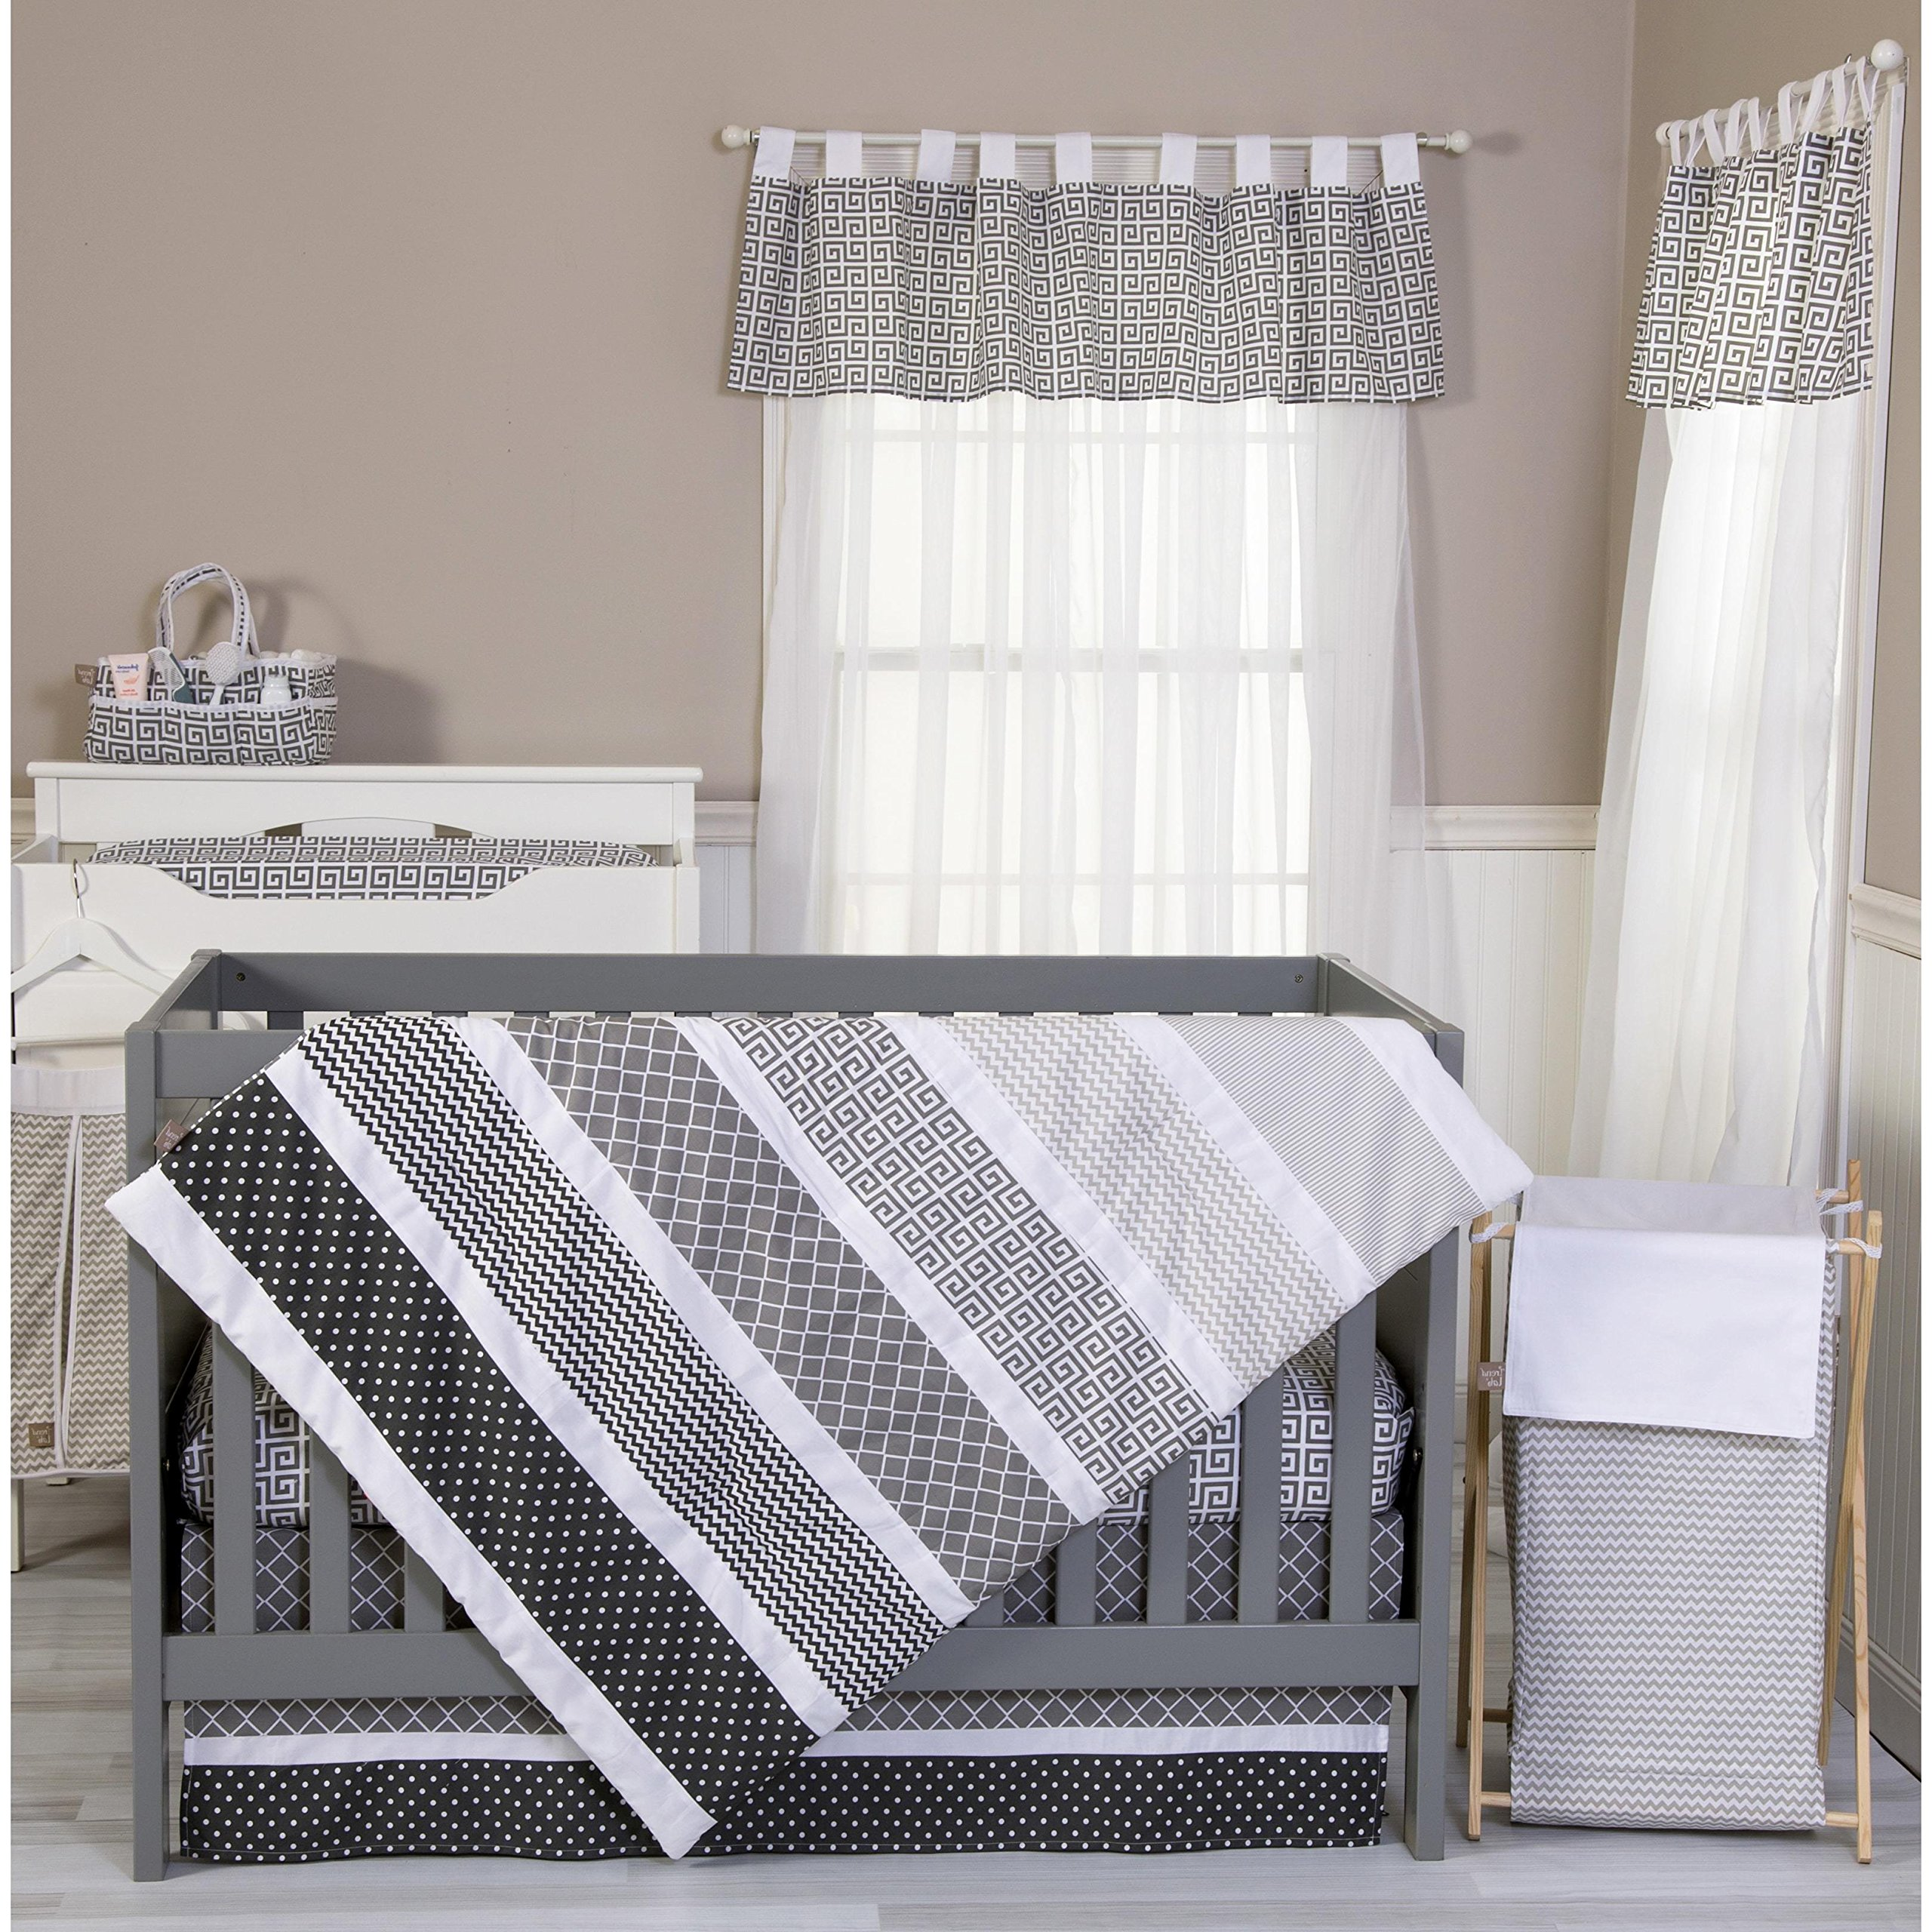 3 Piece Grey White Black Baby Colorful Crib Bedding Set, Newborn Nursery Bed Set Infant Child Diamond Patches Gray Pinstripes Chevron Stripes Polka Dot Pattern Reversible Blanket Quilt, Cotton